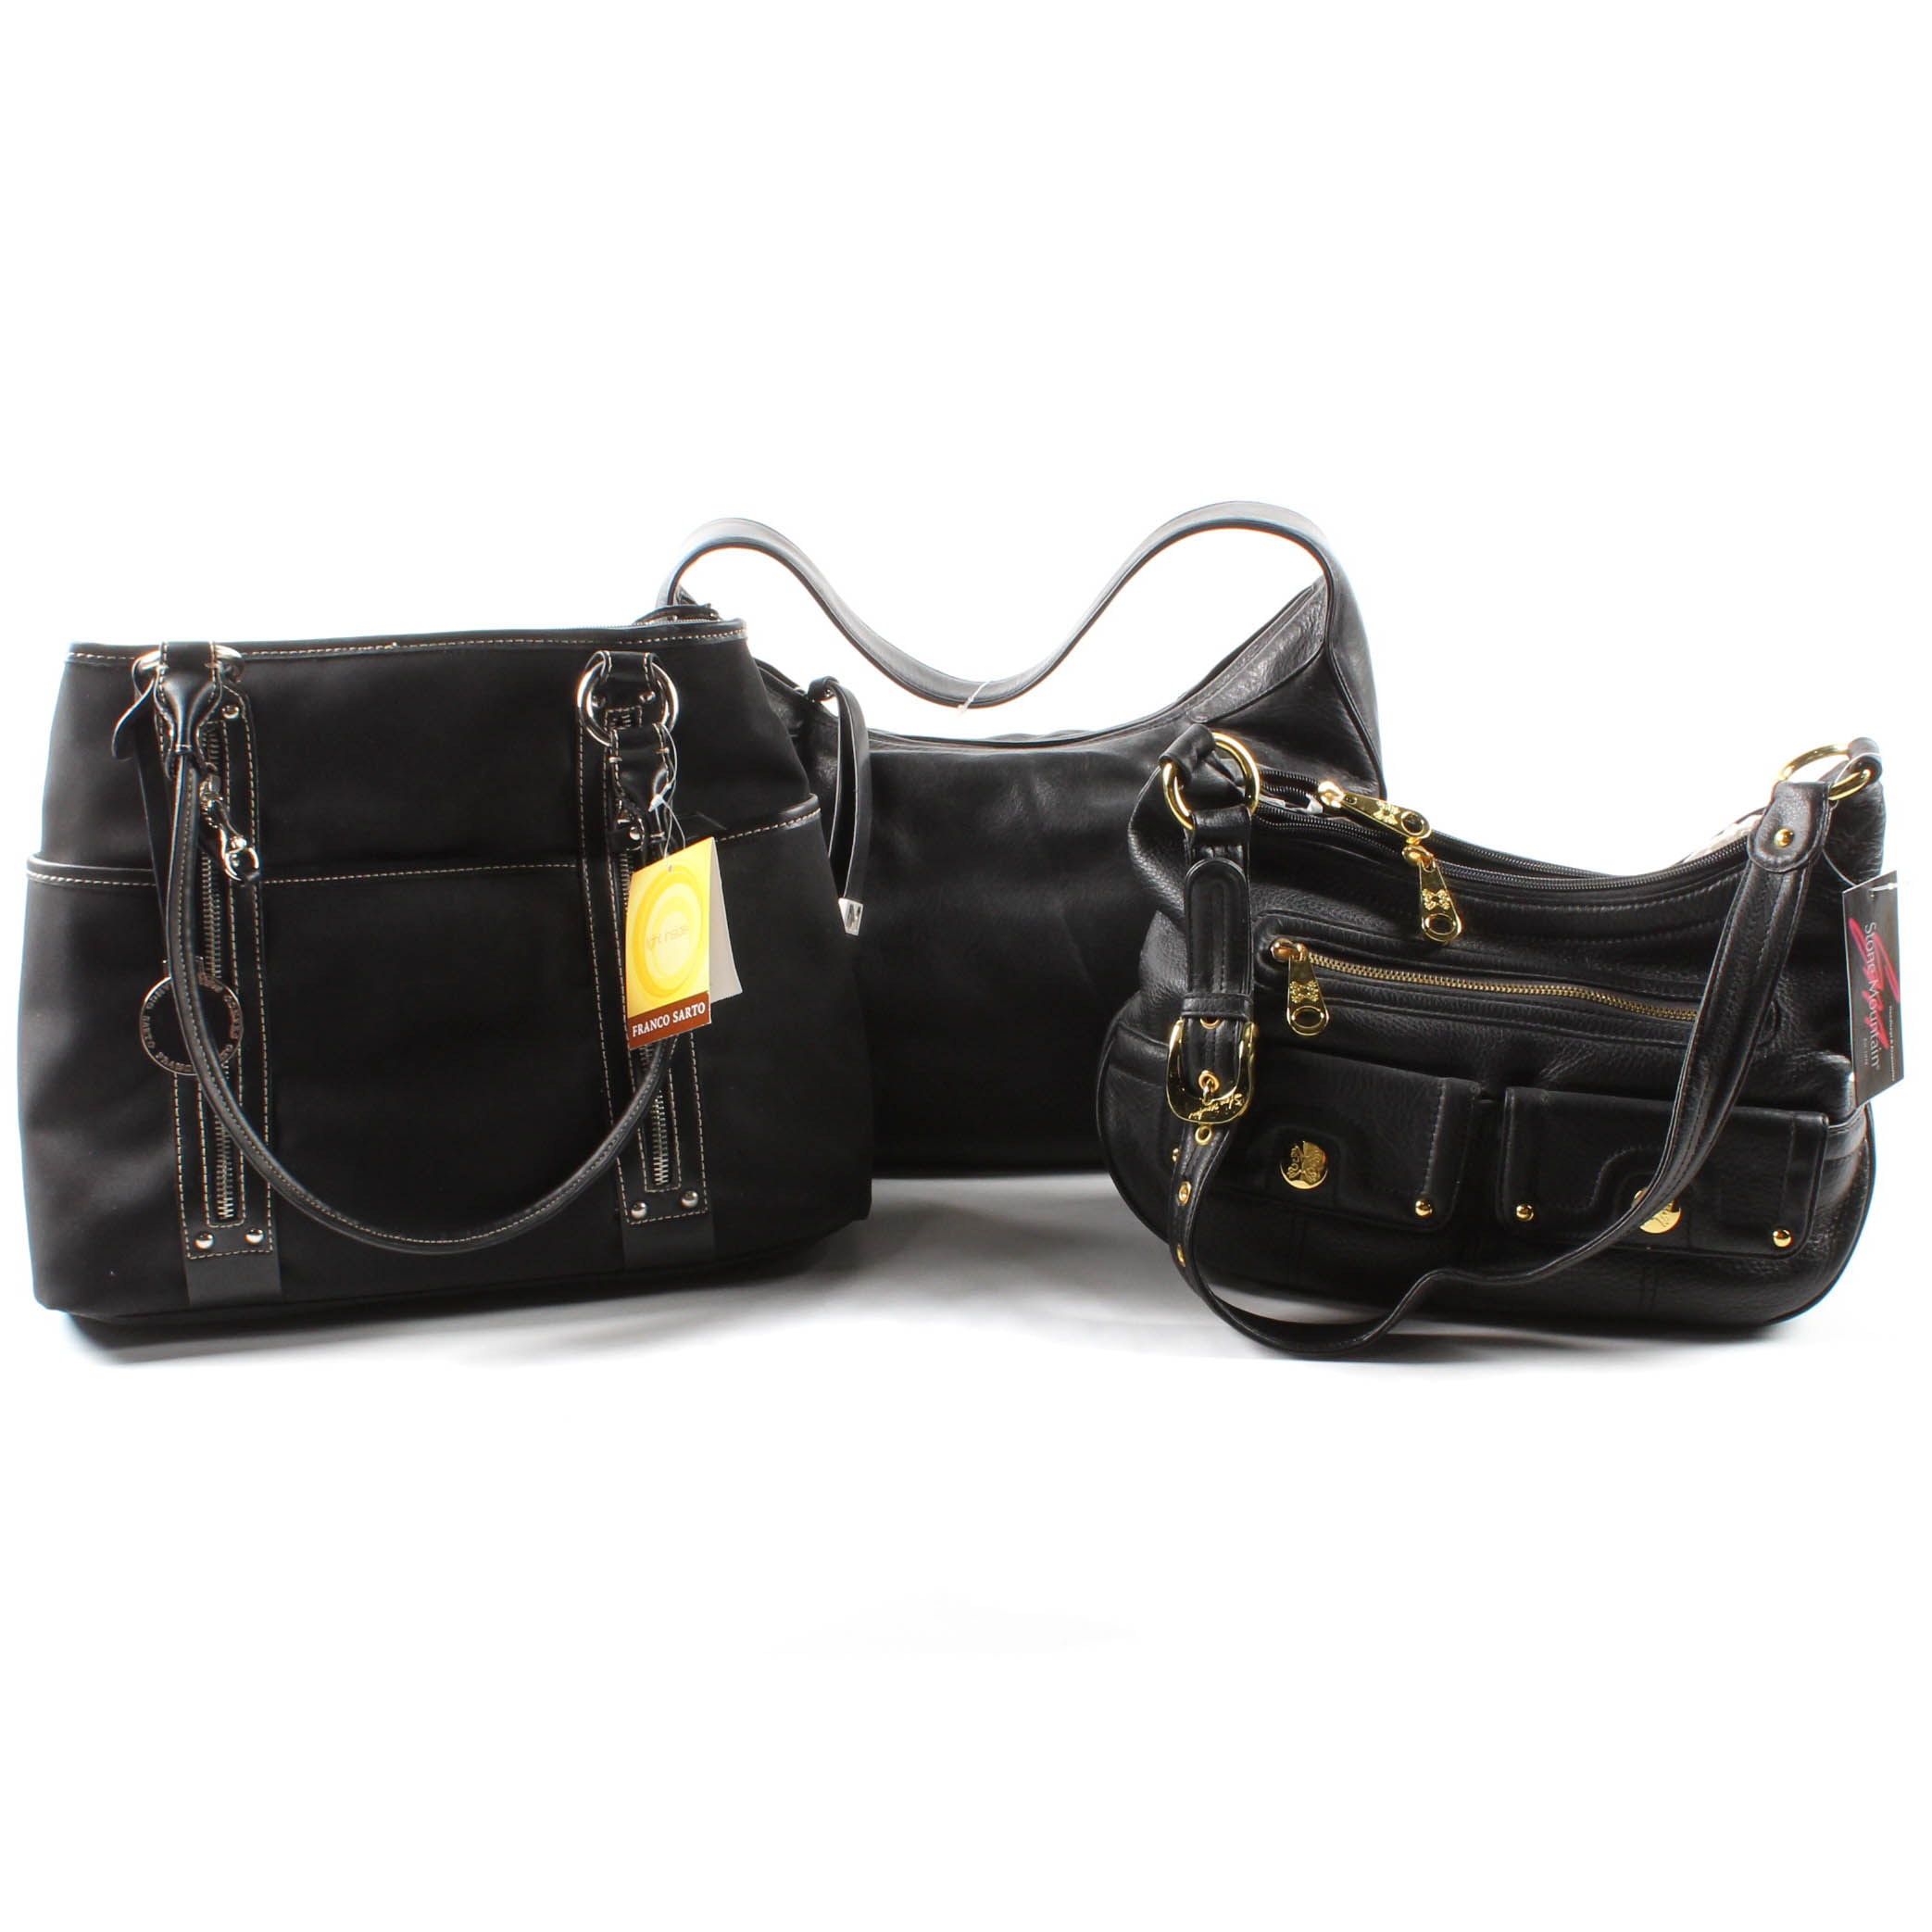 Black Handbags Featuring Franco Sarto and MICHAEL Michael Kors